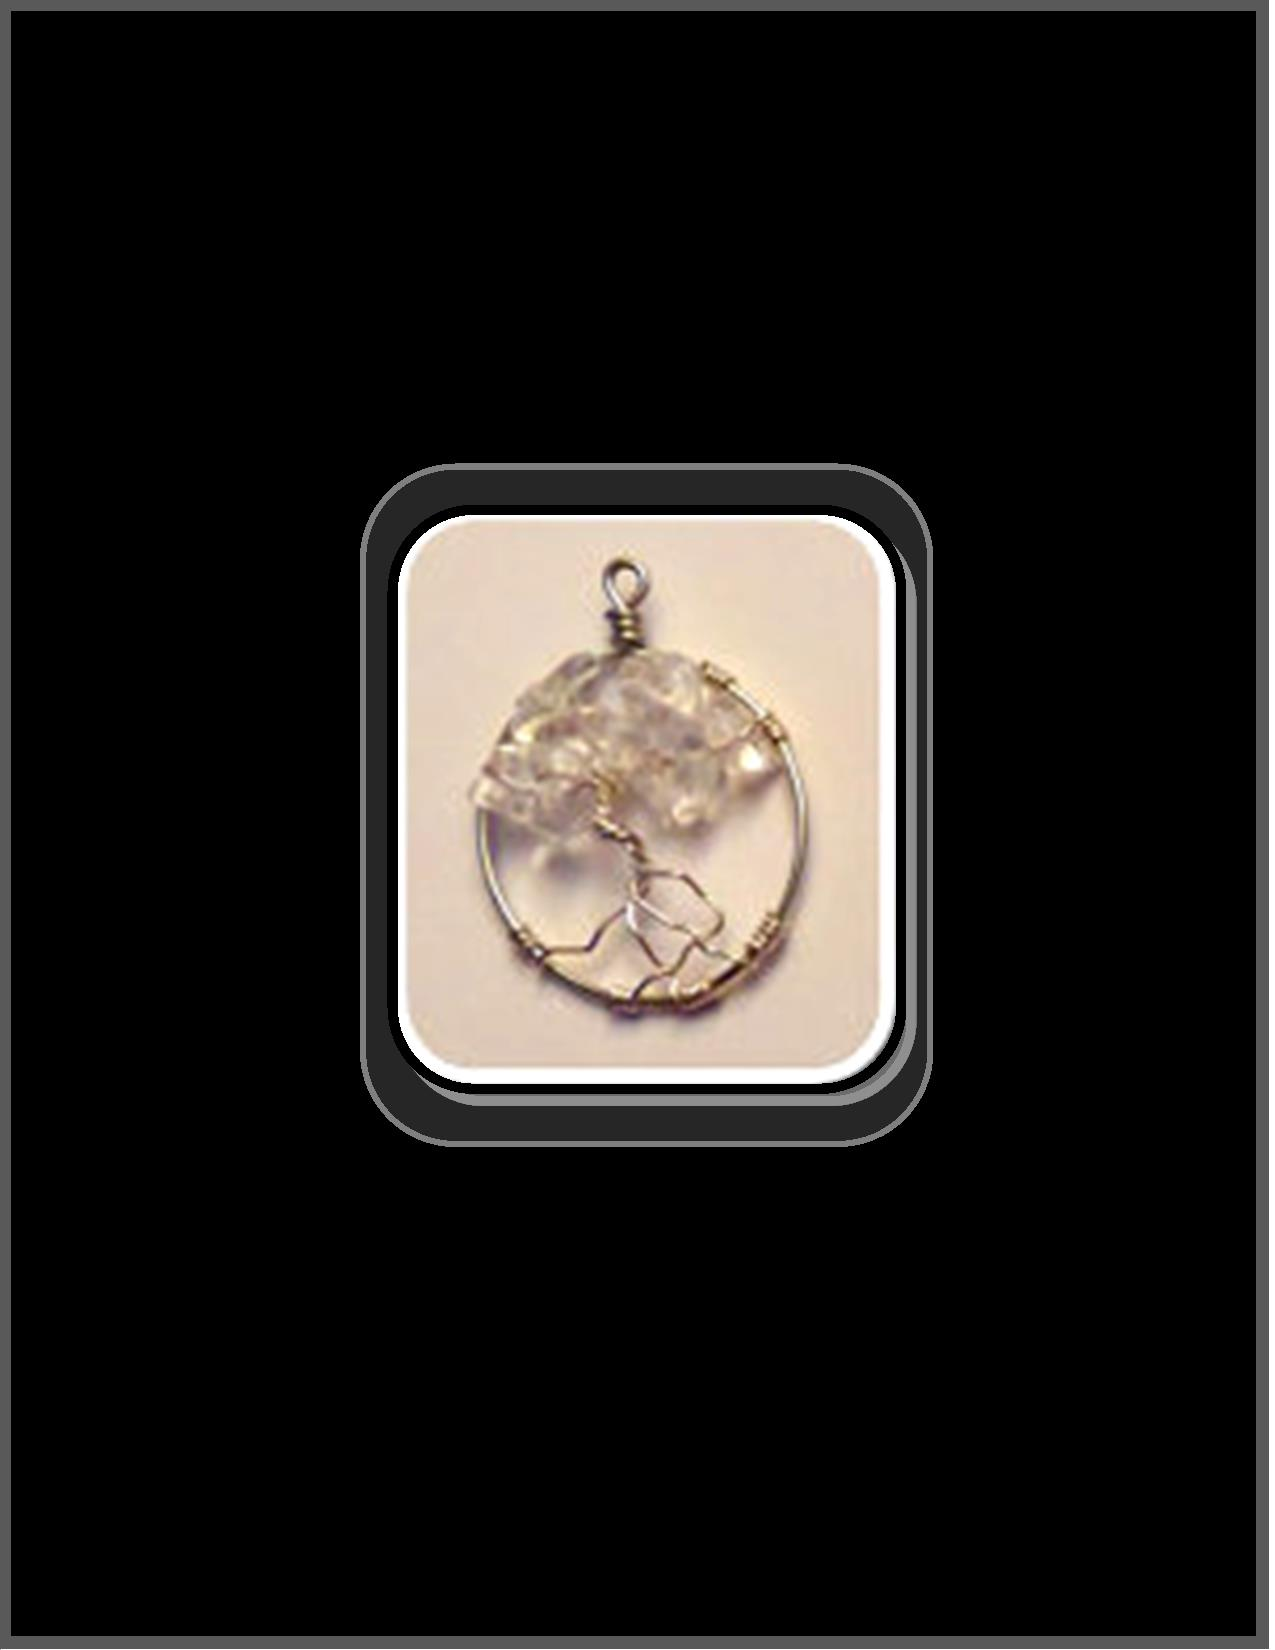 overstock free heart over locket jewelry family floating shipping necklace love round product crystals watches orders on pendant charm queenberry tree